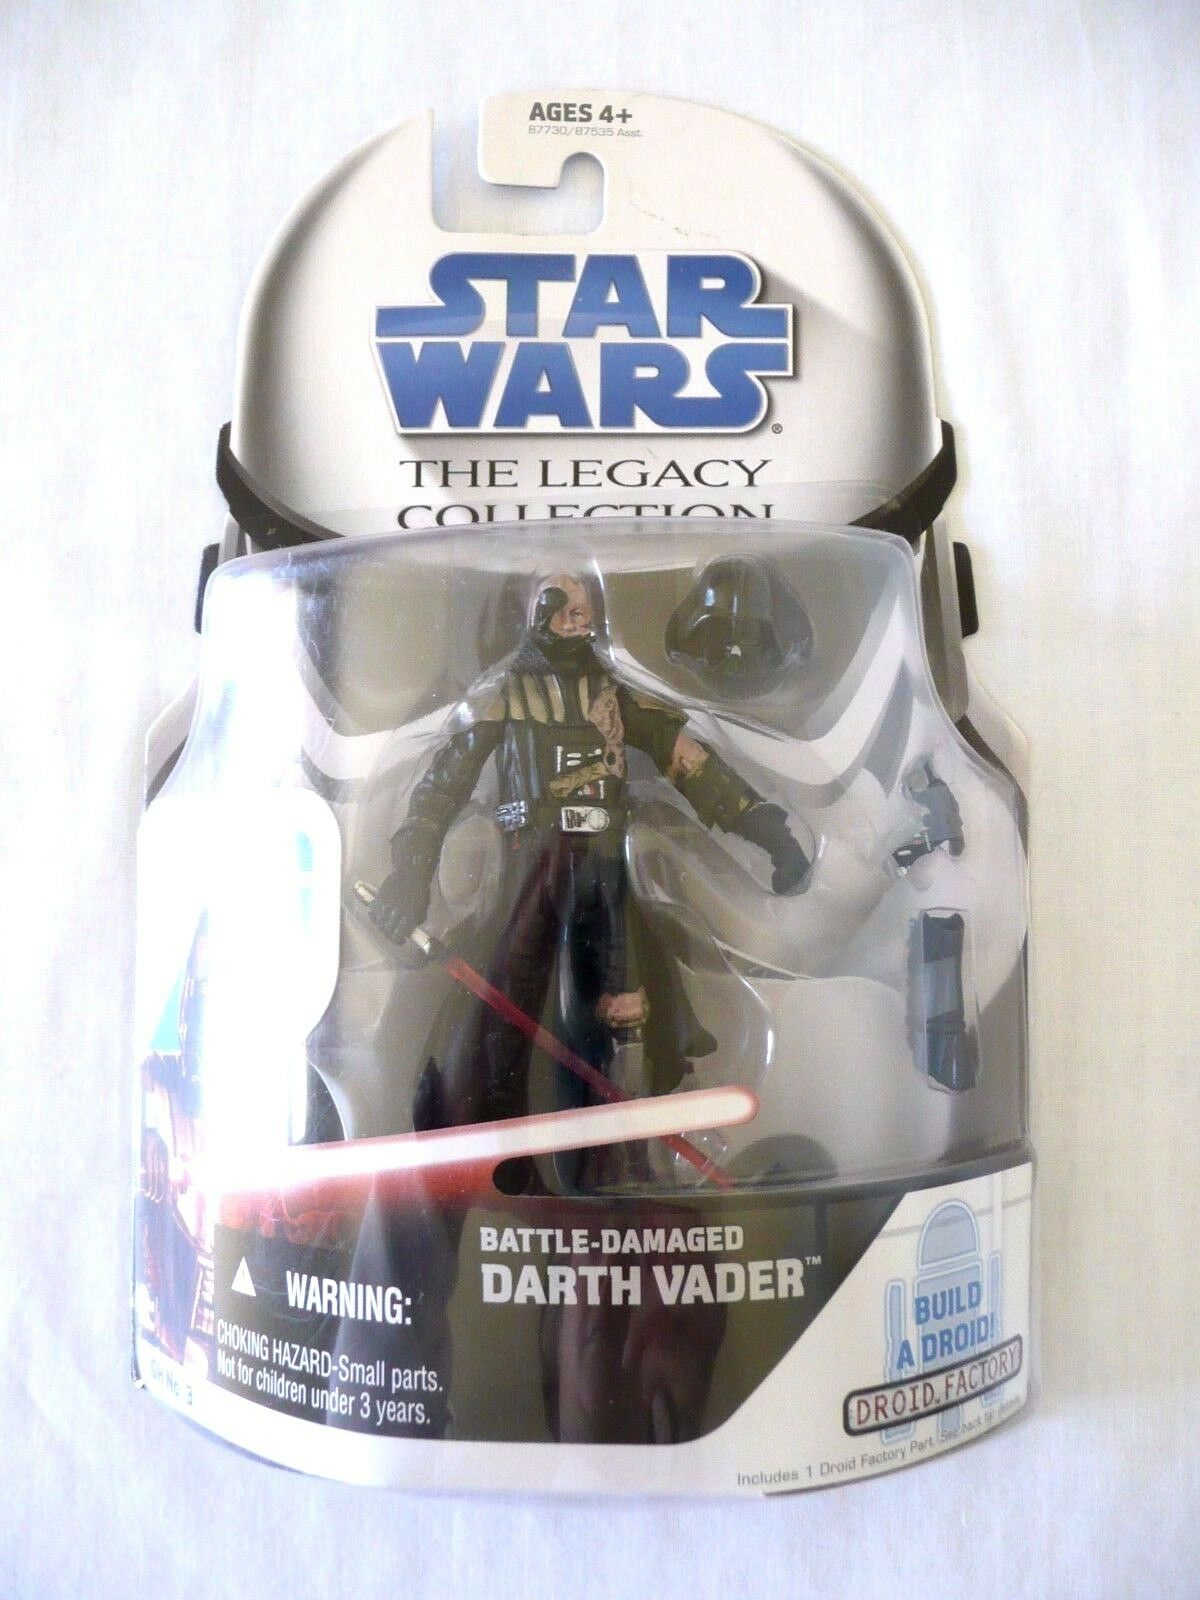 Star Wars Legacy Collection Battle Damaged Darth Vader Action Figure, Droid, NEW